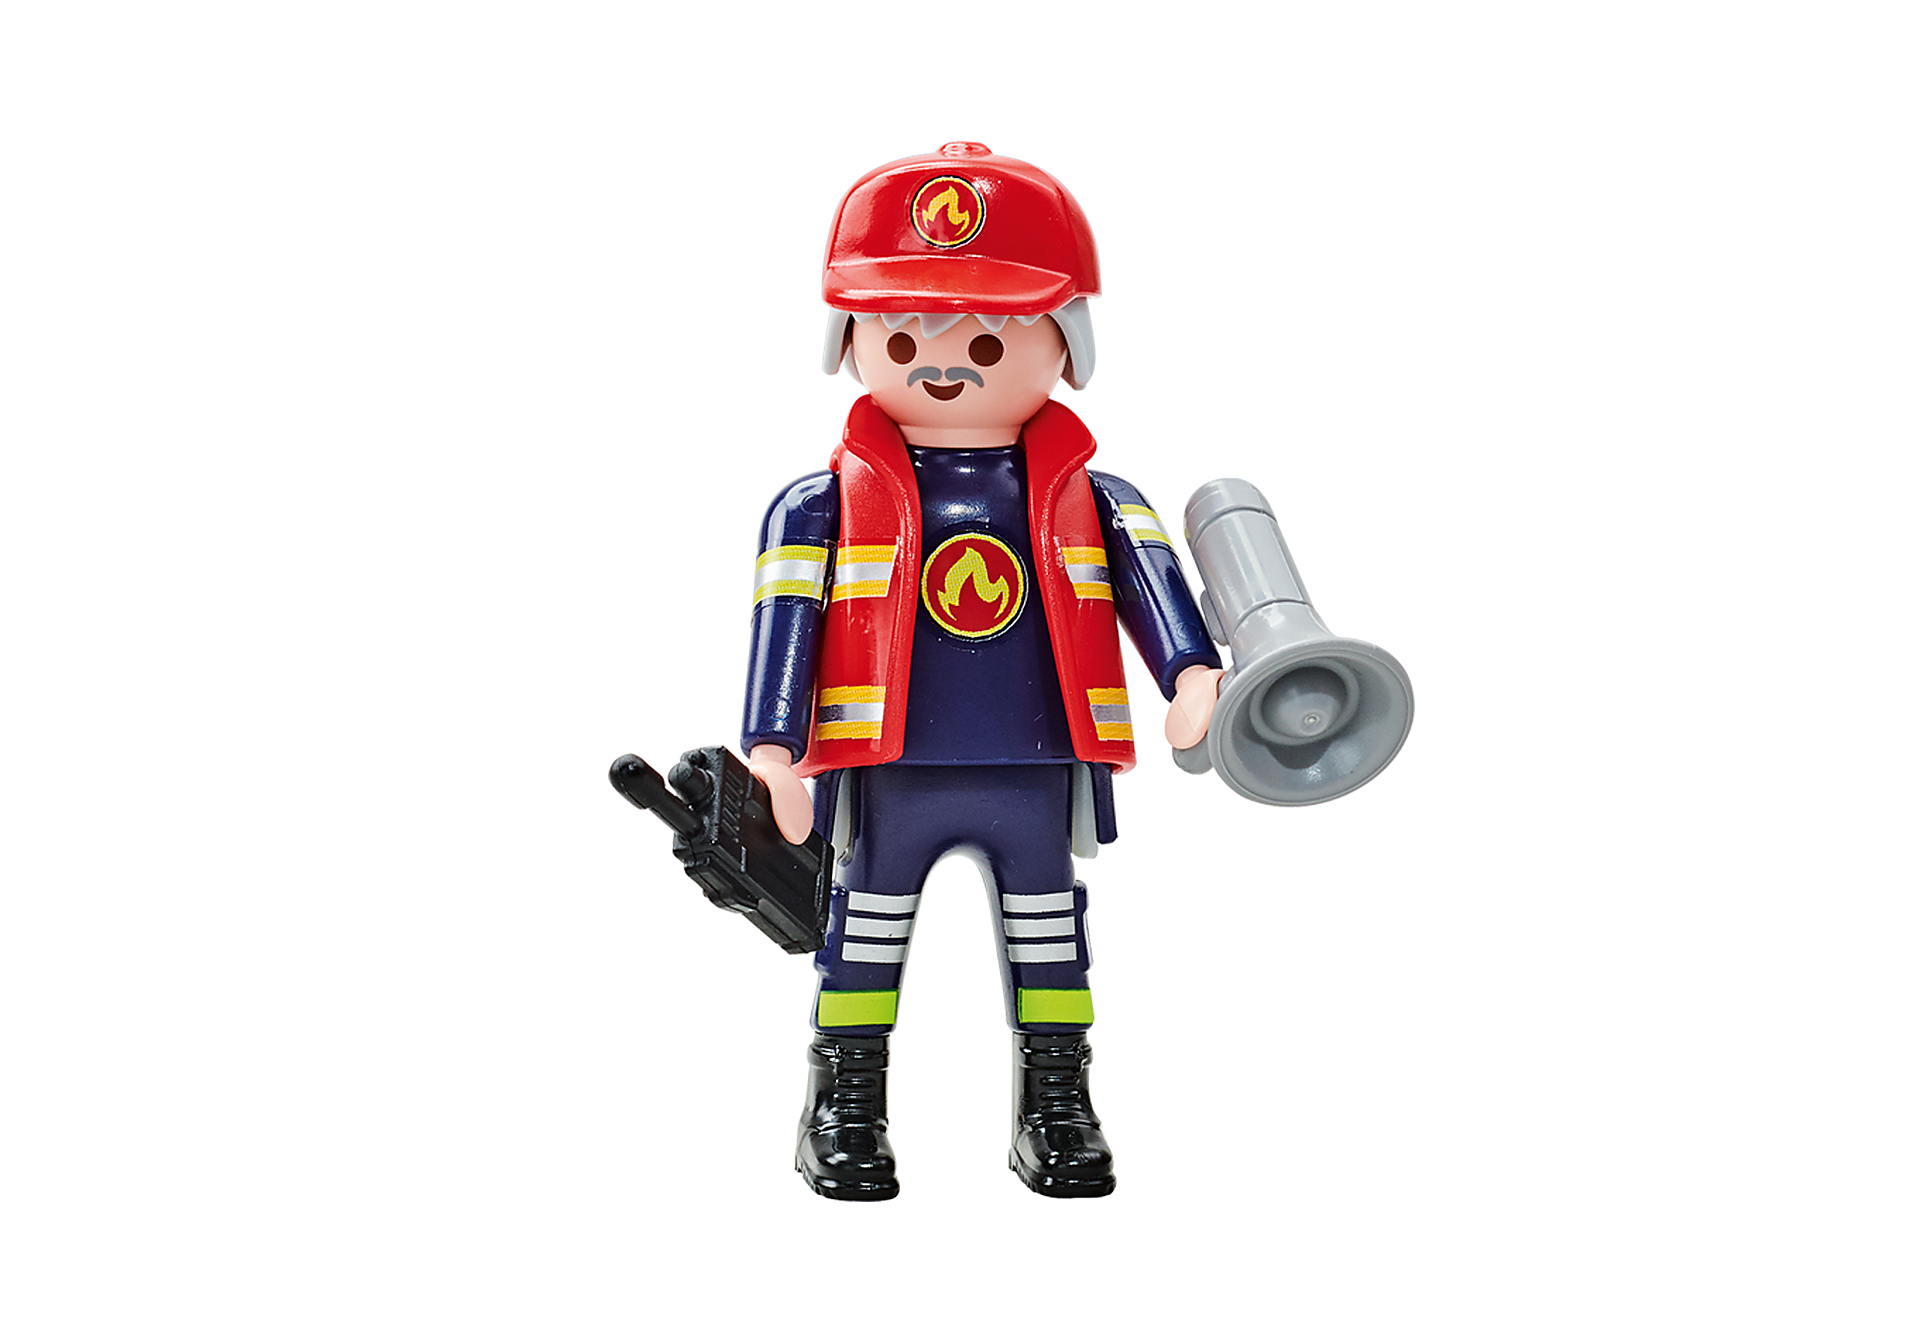 http://media.playmobil.com/i/playmobil/6585_product_detail/Chef des pompiers Equipe B